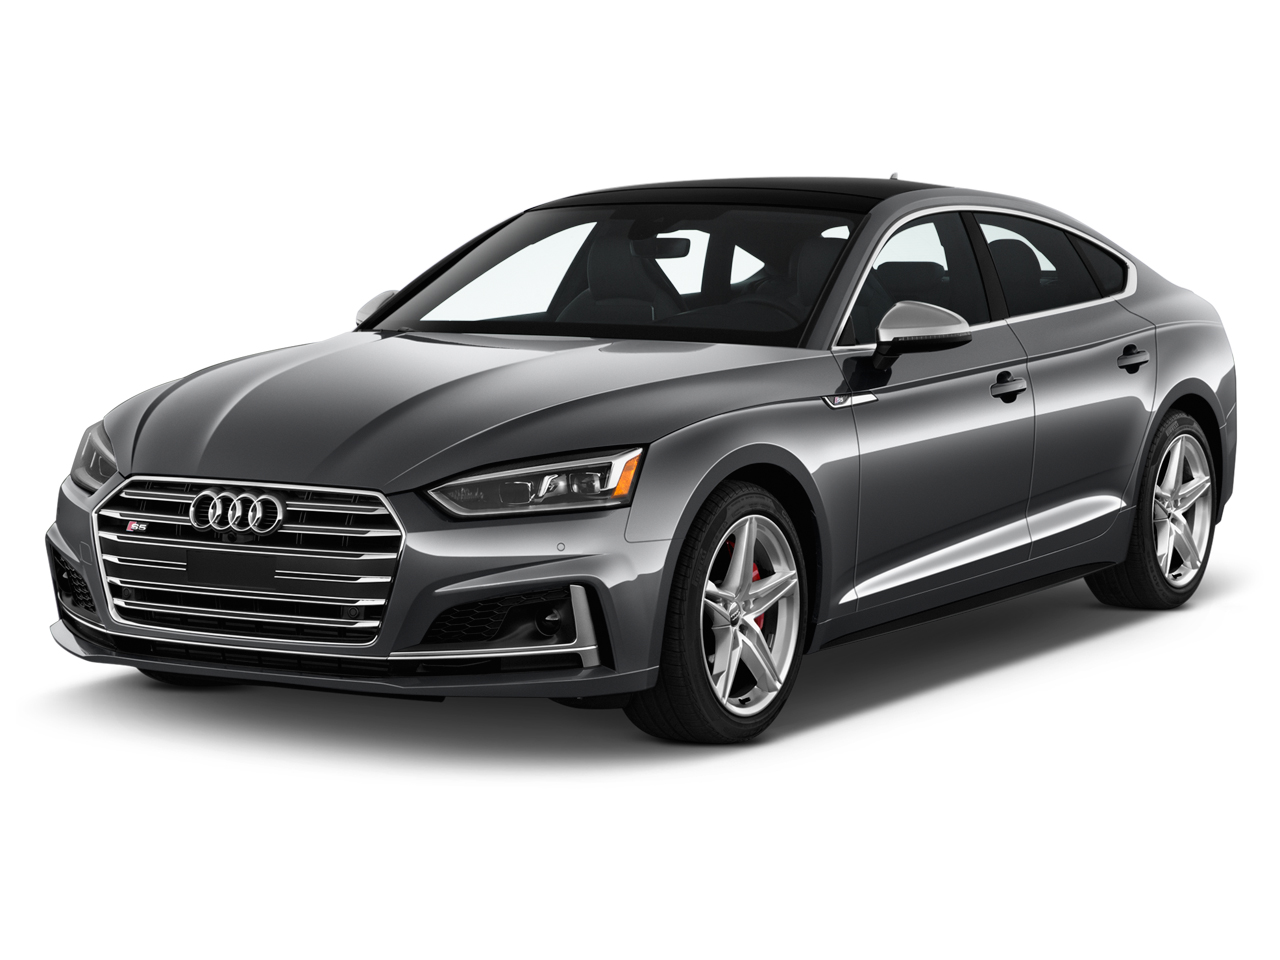 Used Minivans For Sale >> 2019 Audi S5 Sportback Review, Ratings, Specs, Prices, and Photos - The Car Connection